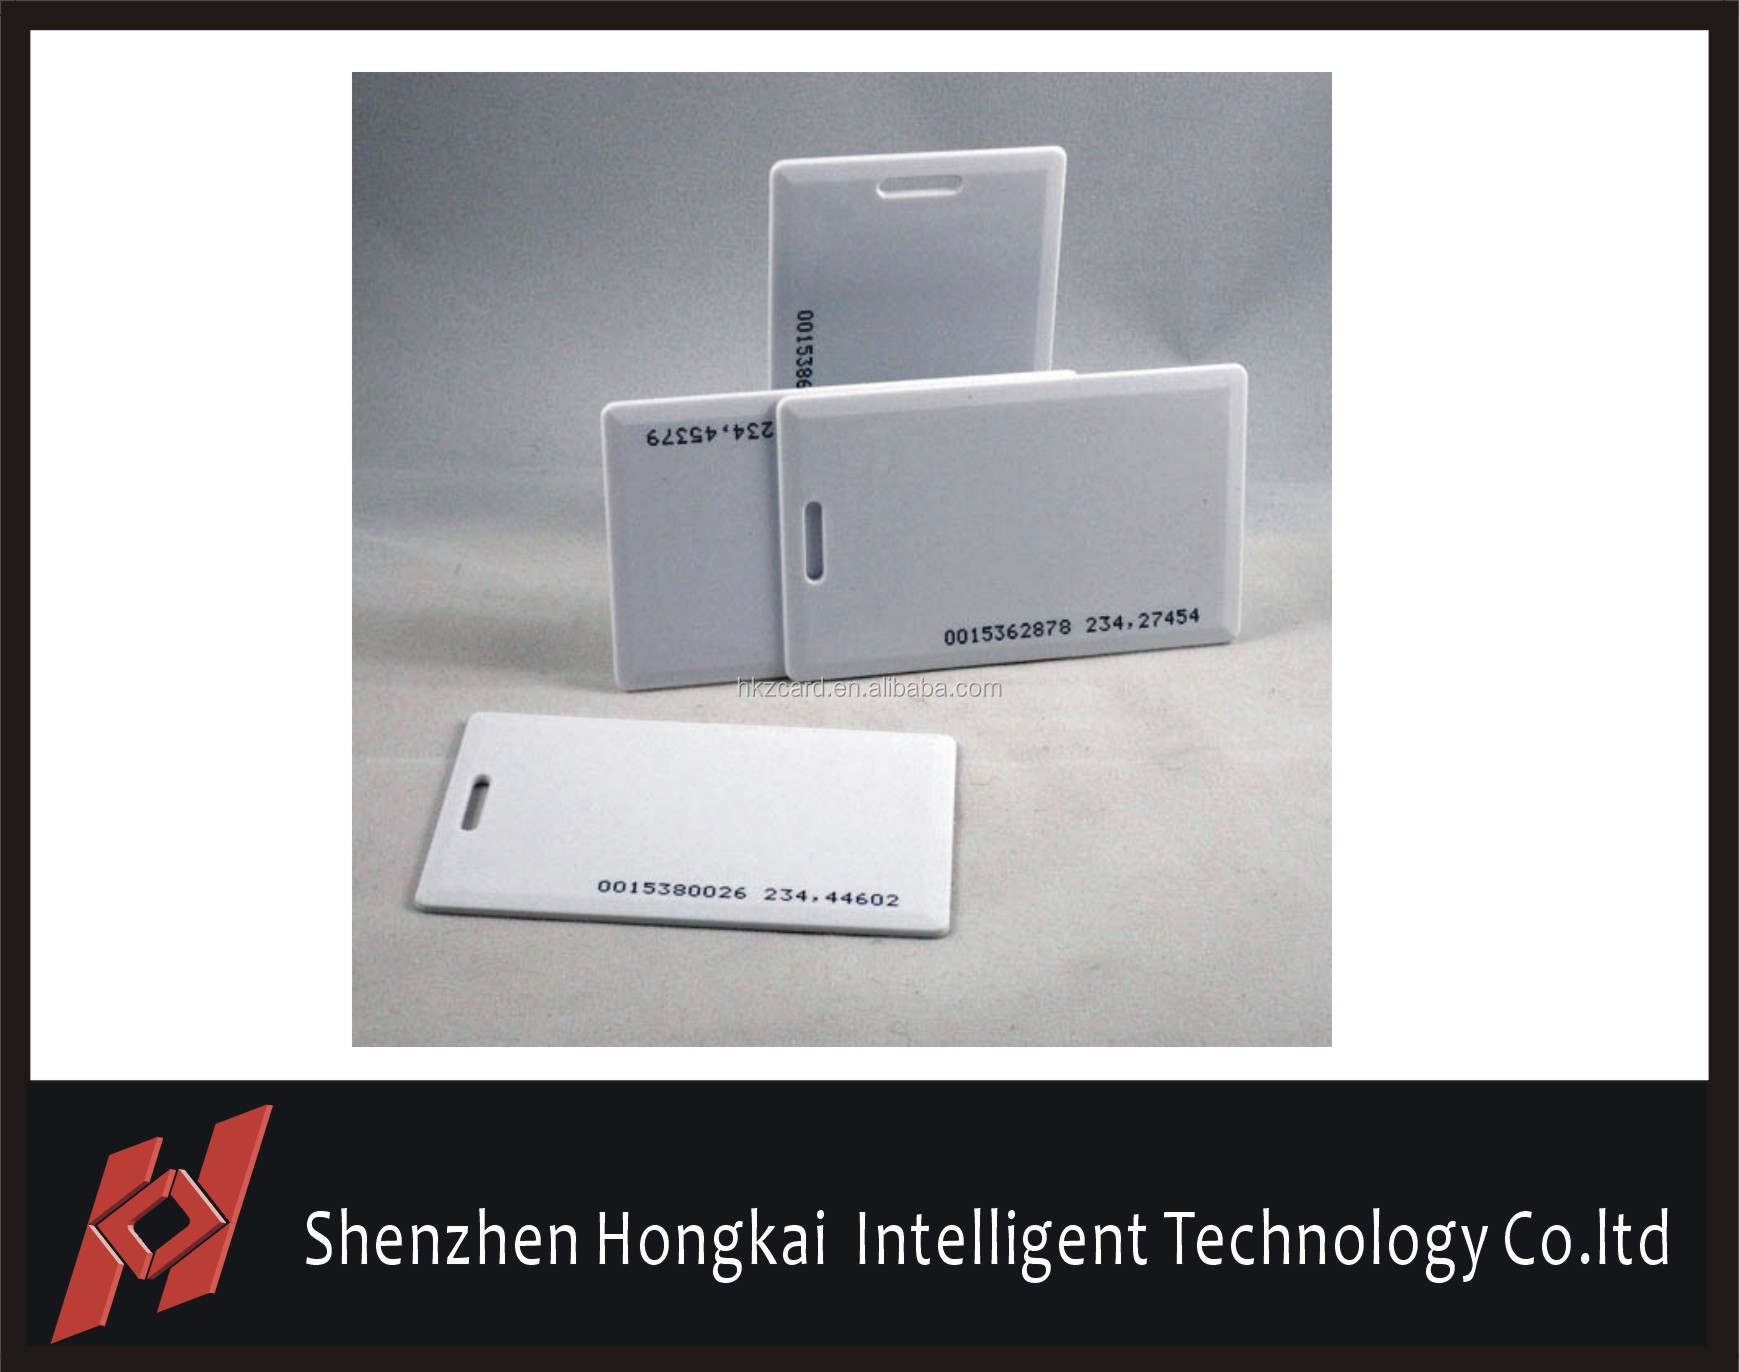 Factory price optional color printing 125khz rfid card with EM4100 chip